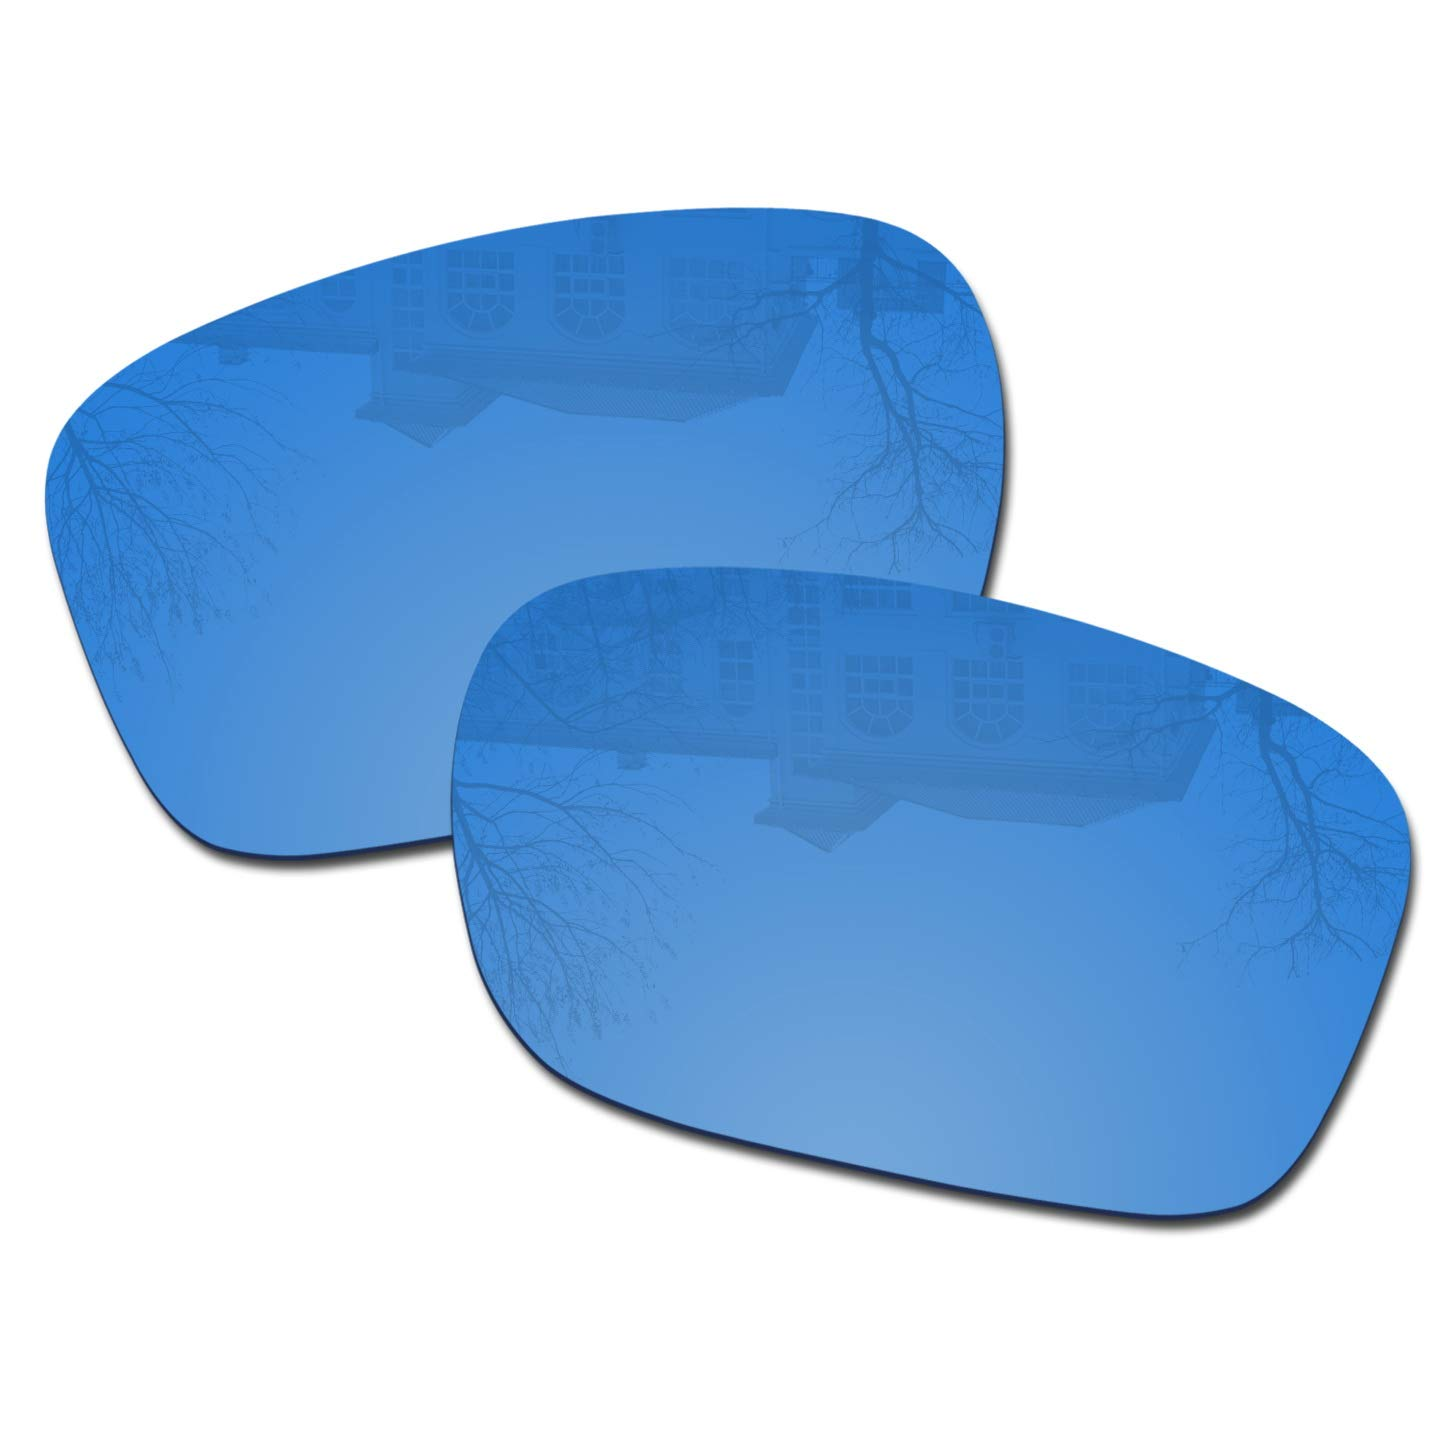 Millersawp Holbrook OO9102 Replacement Lenses Compatiable with Oakley Sunglass-HD Blue by Millersawp